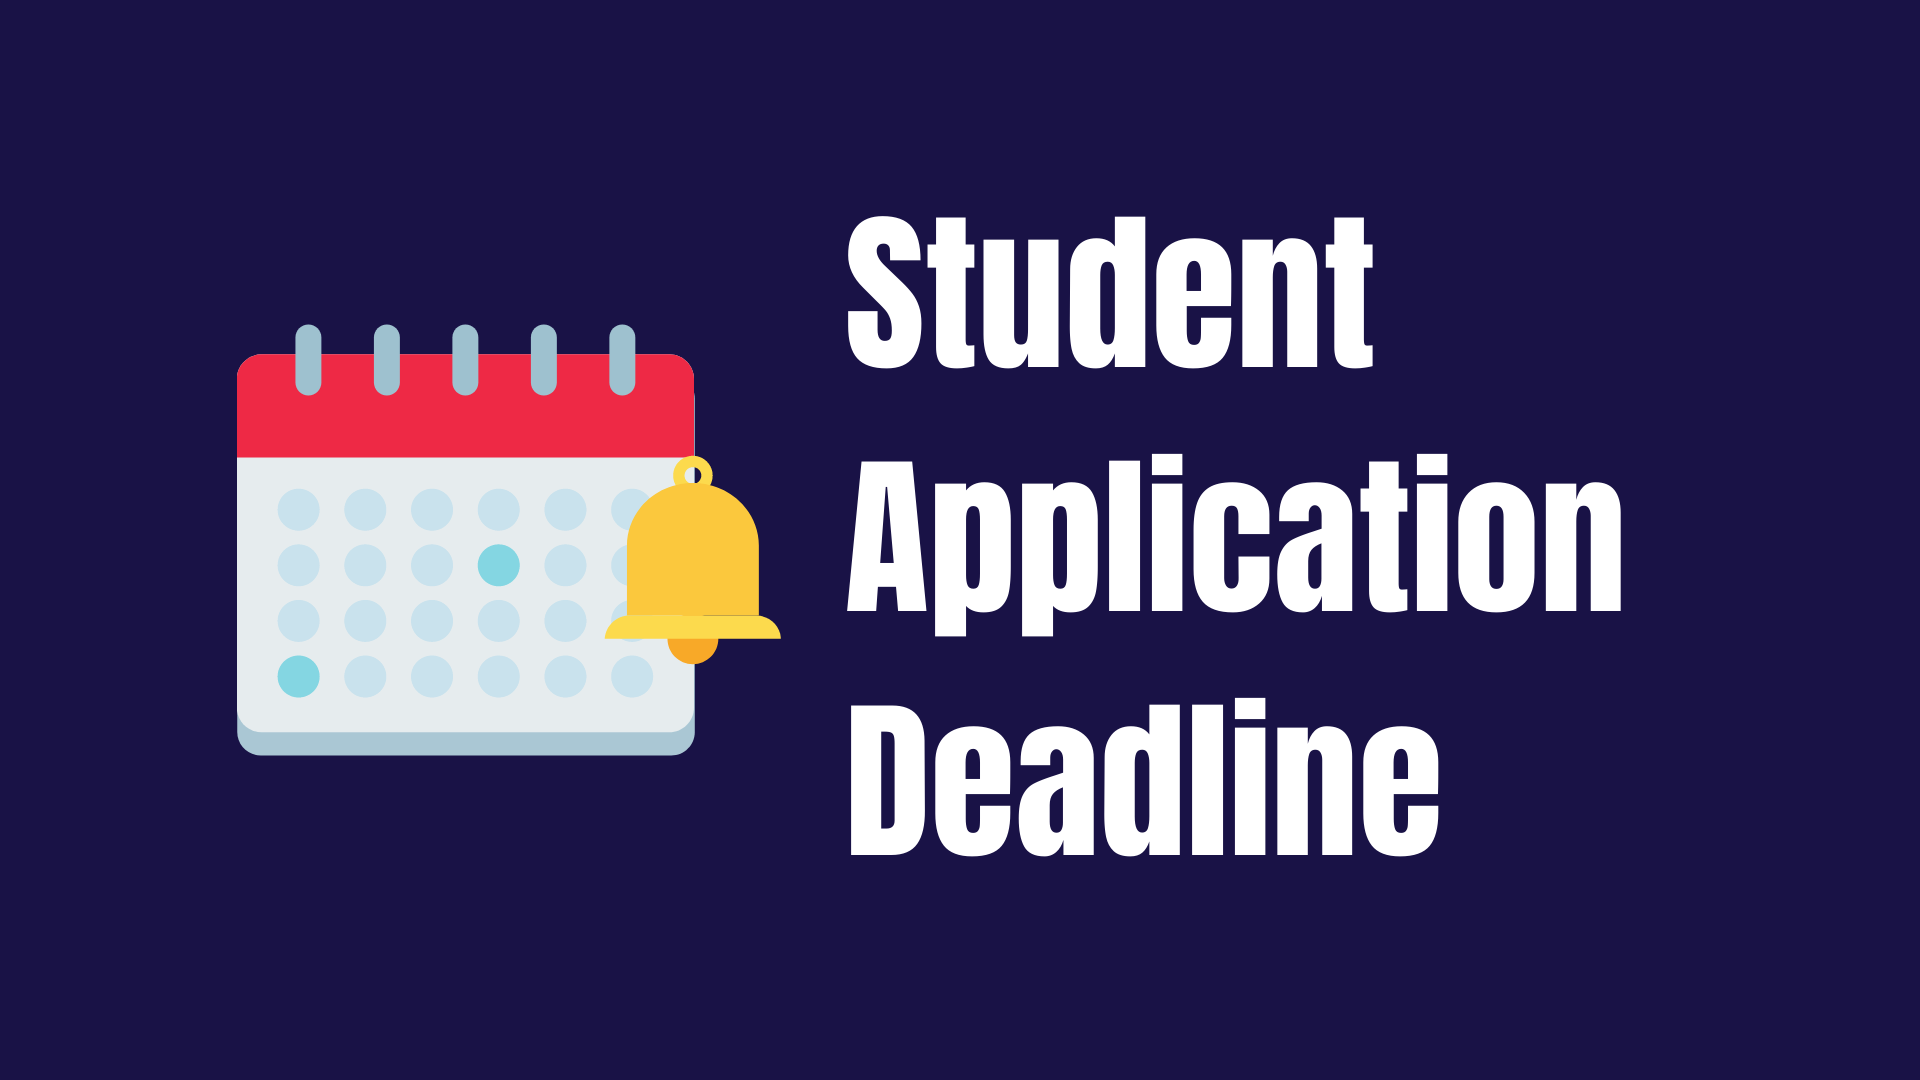 Student Application Deadline